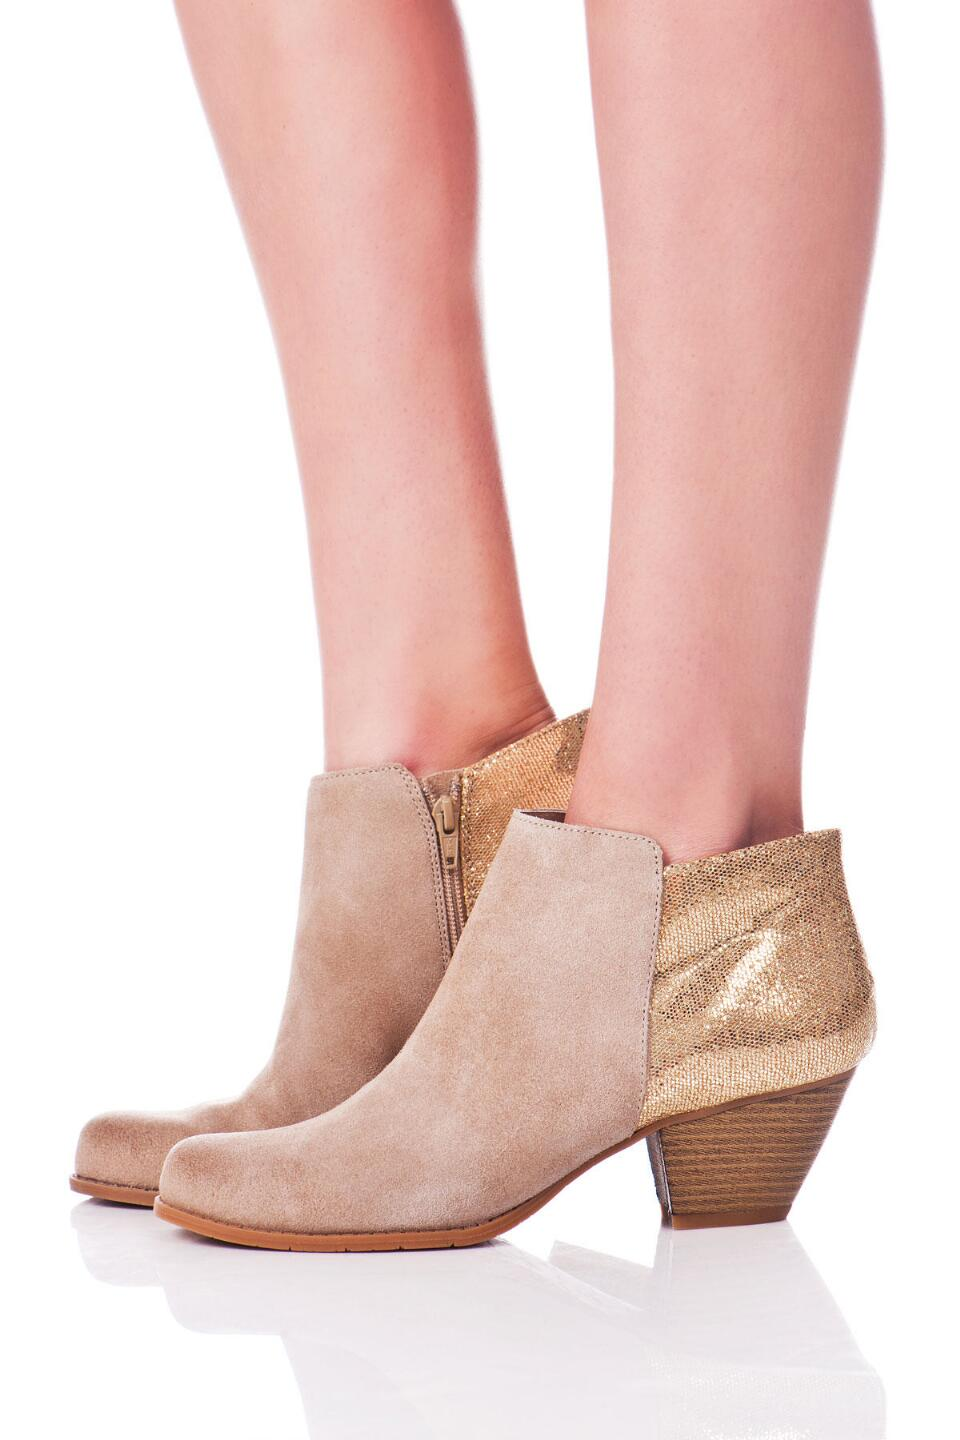 BC Footwear Shoes, Eager Beaver Metallic Bootie-  sand-clmodel